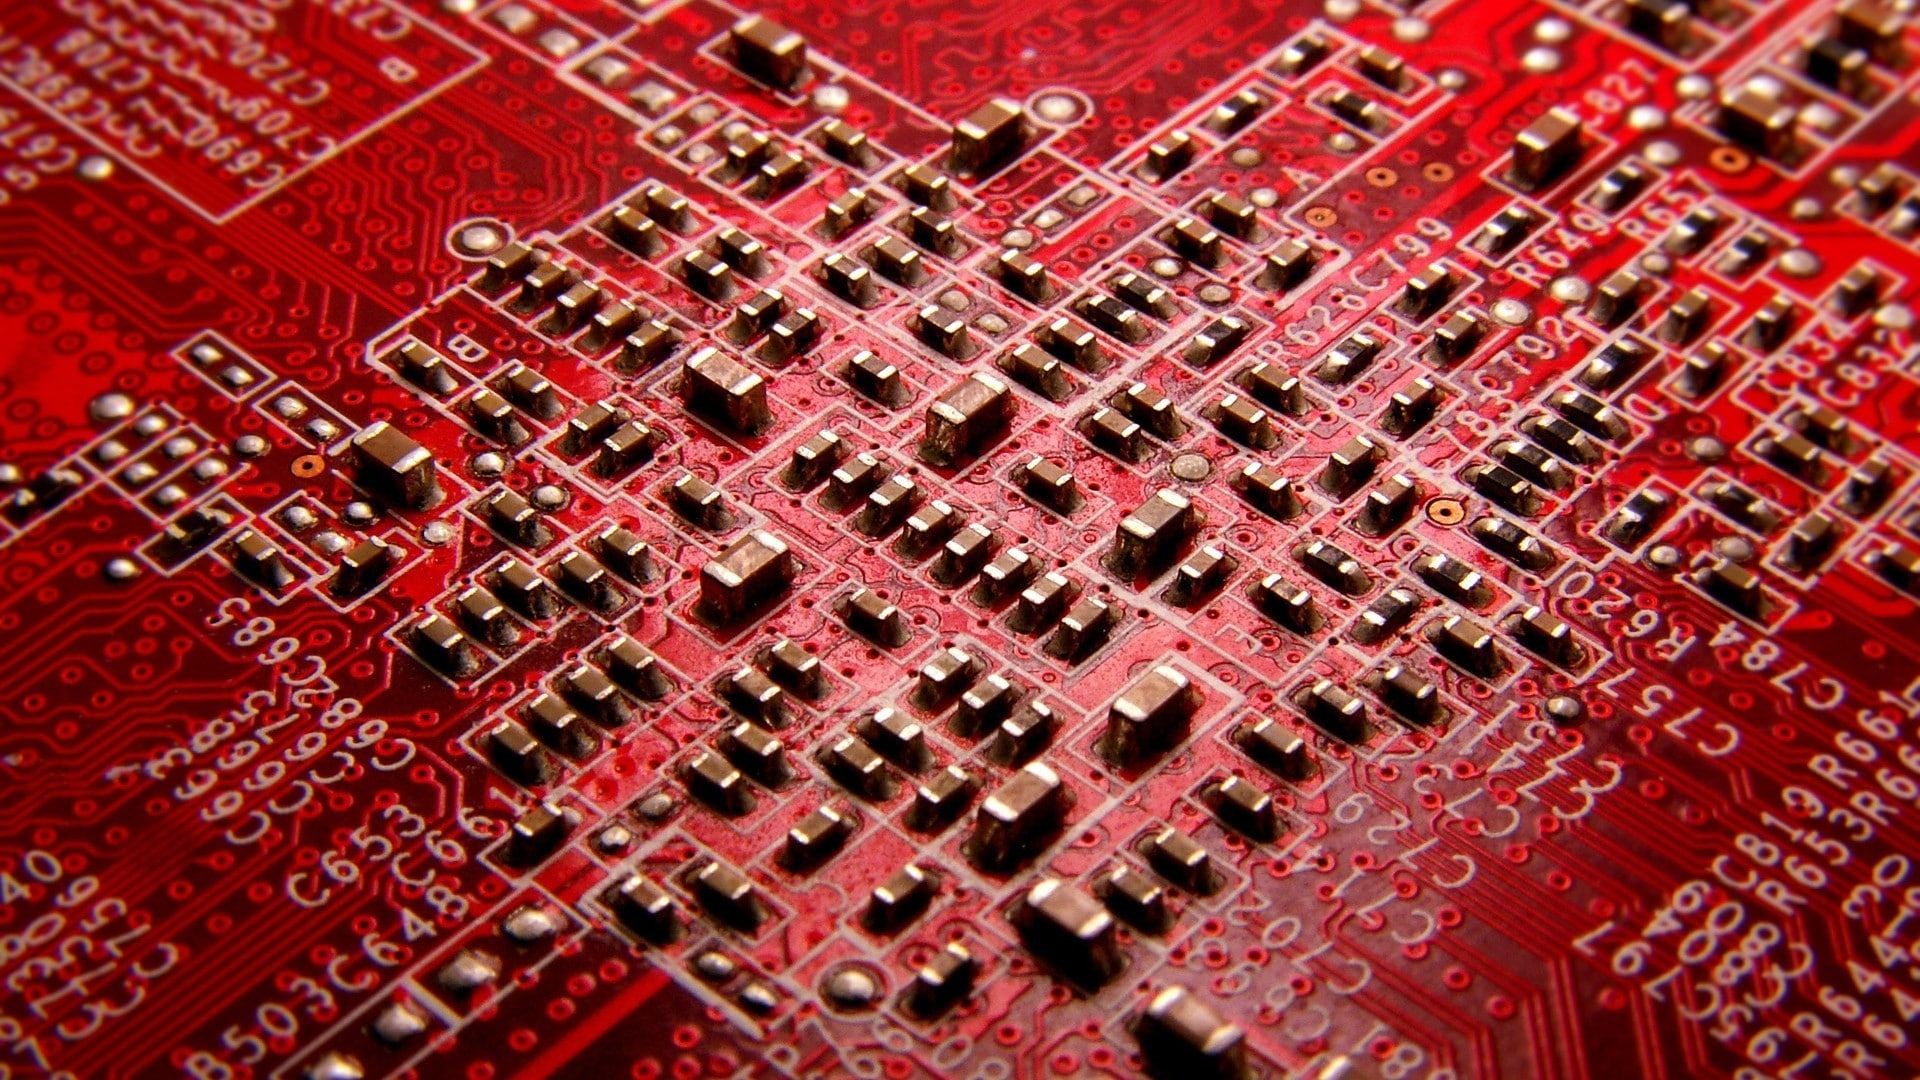 HD wallpaper red and black motherboard hardware circuit boards 1920x1080